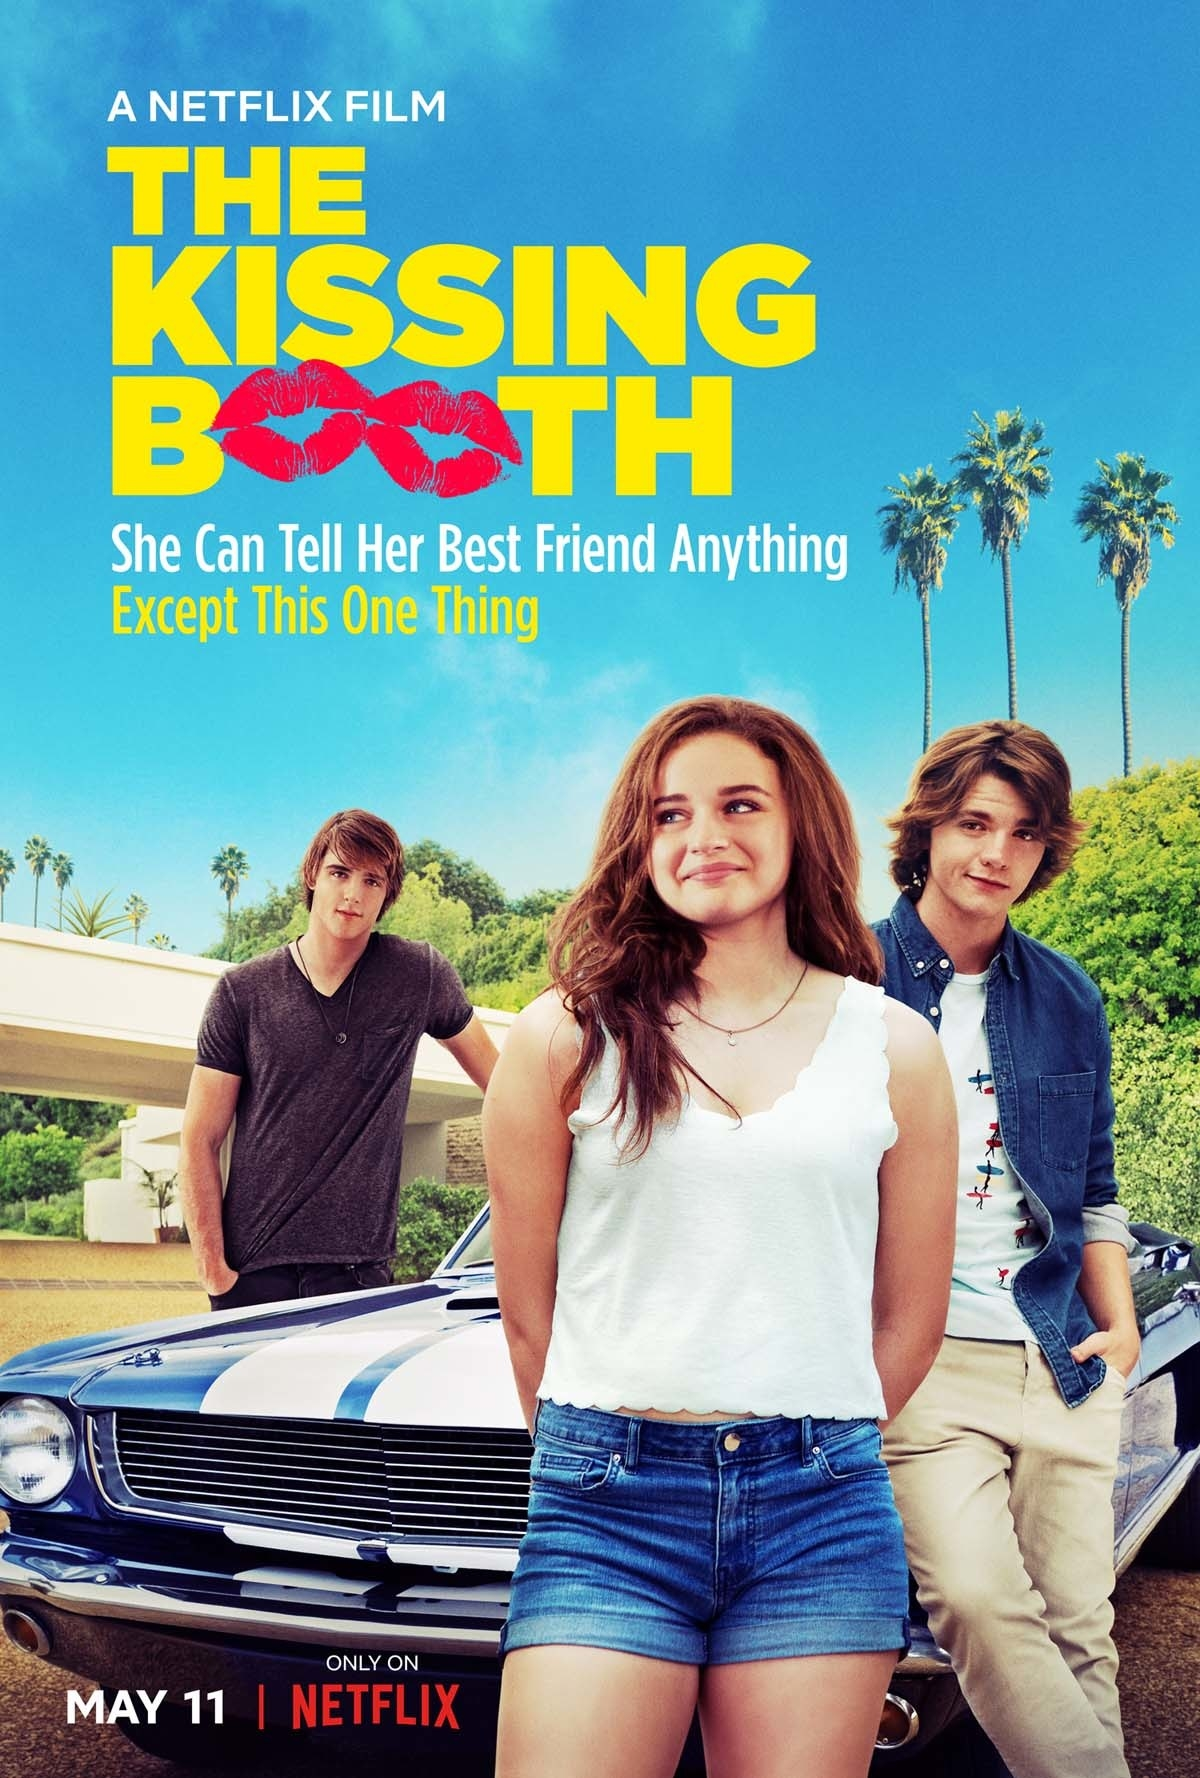 """Here's how Netflix describes the movie: """"When teenager Elle's first kiss leads to a forbidden romance with the hottest boy in high school, she risks her relationship with her best friend."""""""